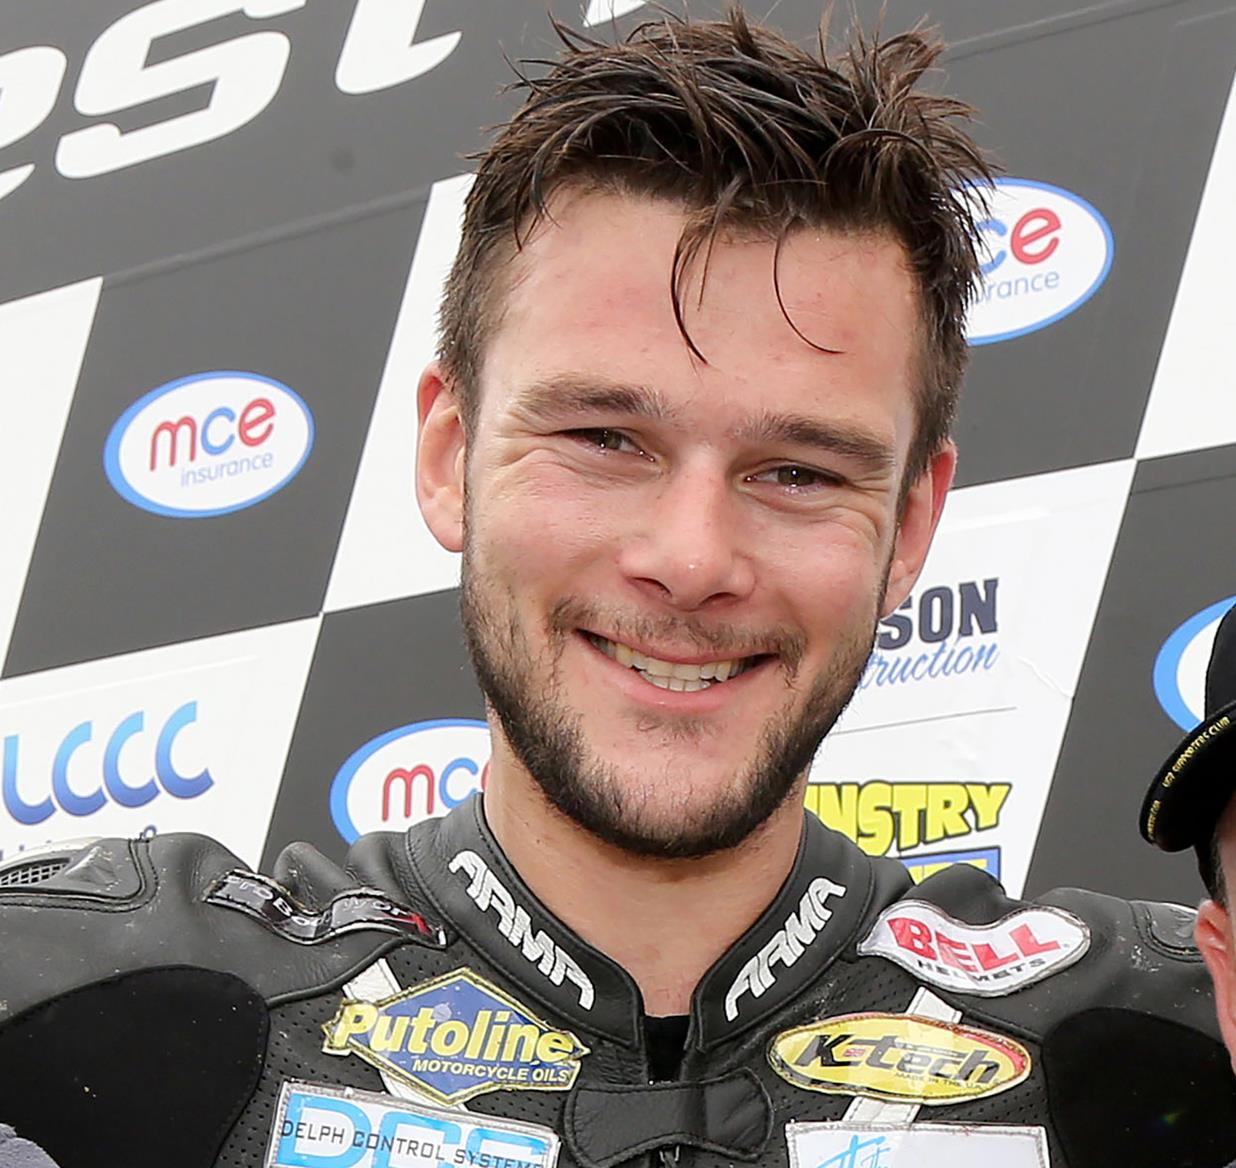 Hegarty killed in accident at Macao Motorcycle GP